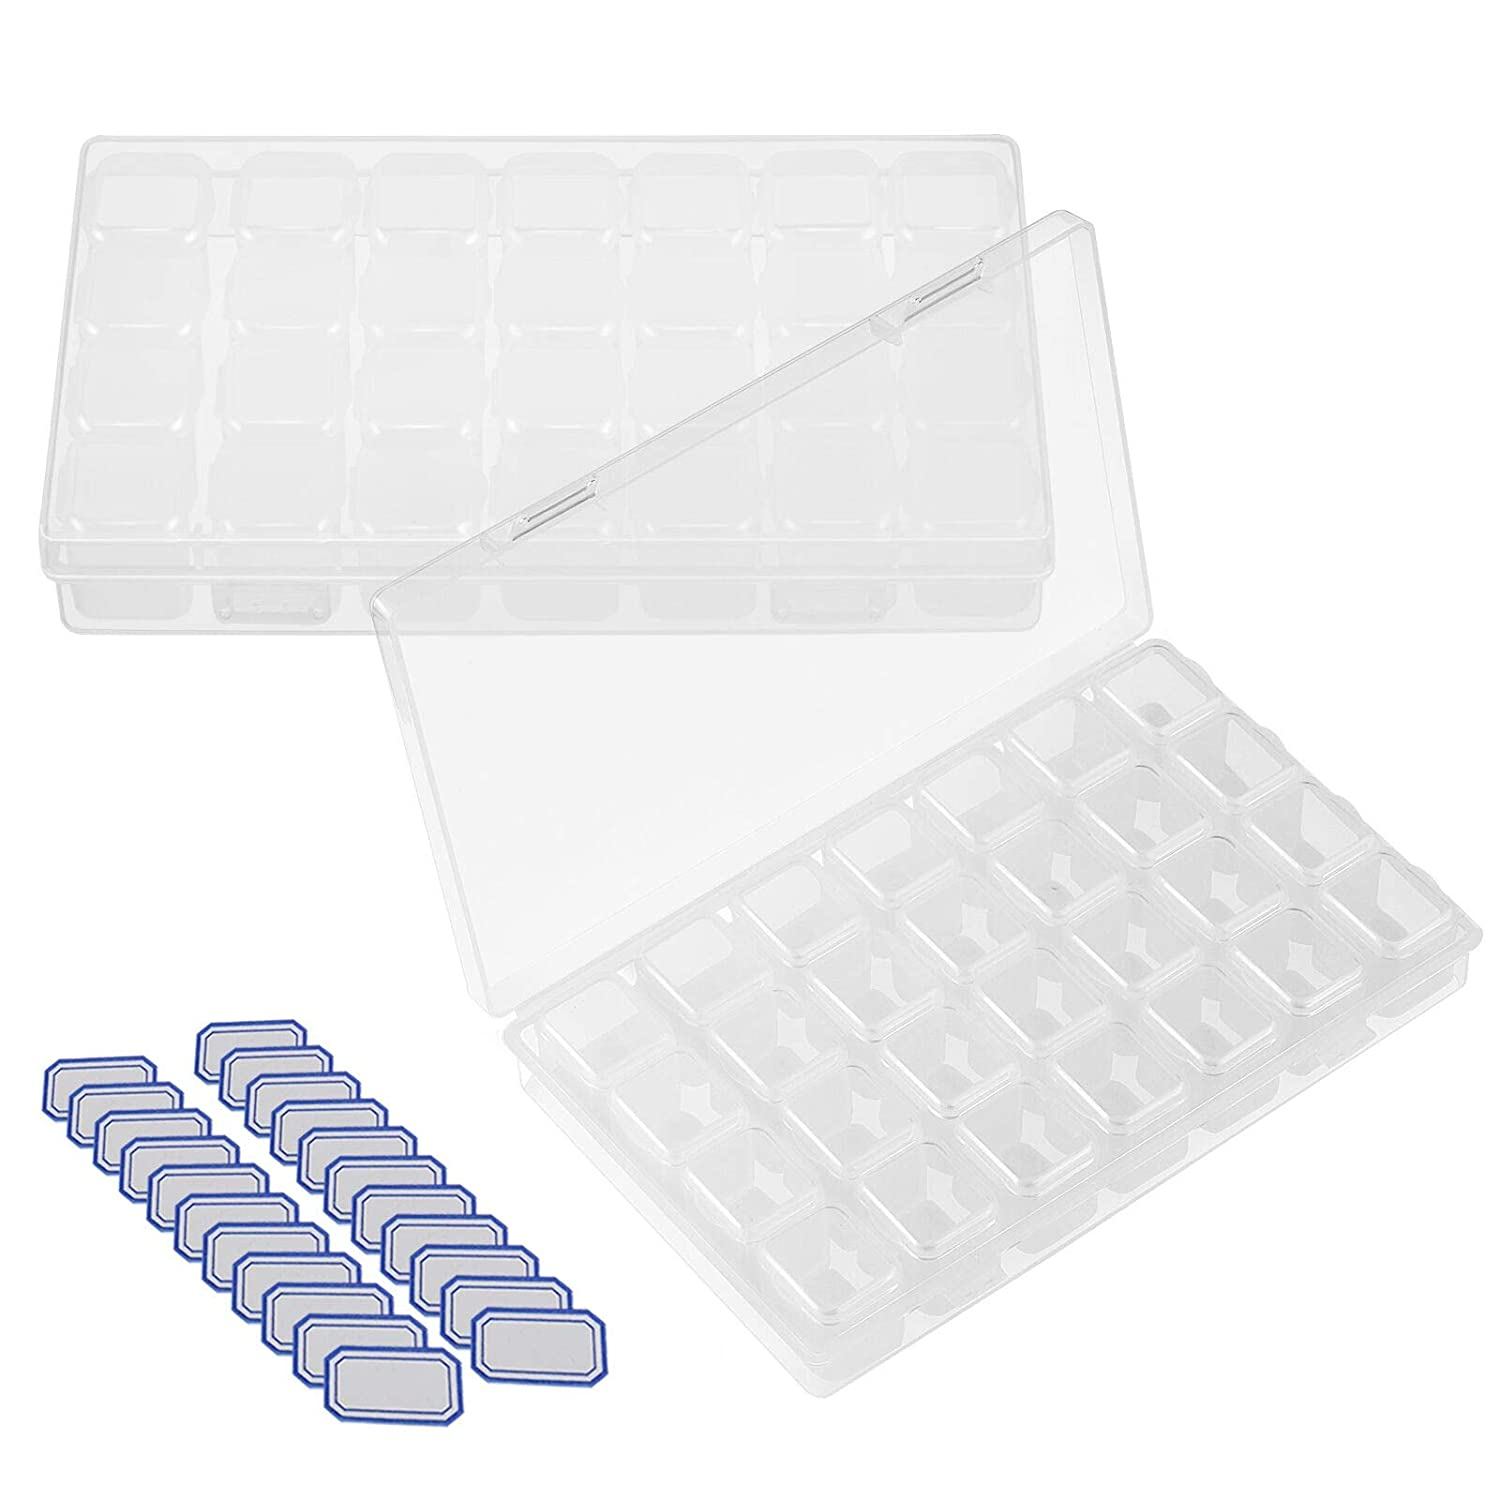 SEELOK 2 Pack 28 Grids Plastic Storage Boxes Diamond Painting Nail Accessory Box Organizer Storage Container for DIY Art Craft. SZYGS 4336939874